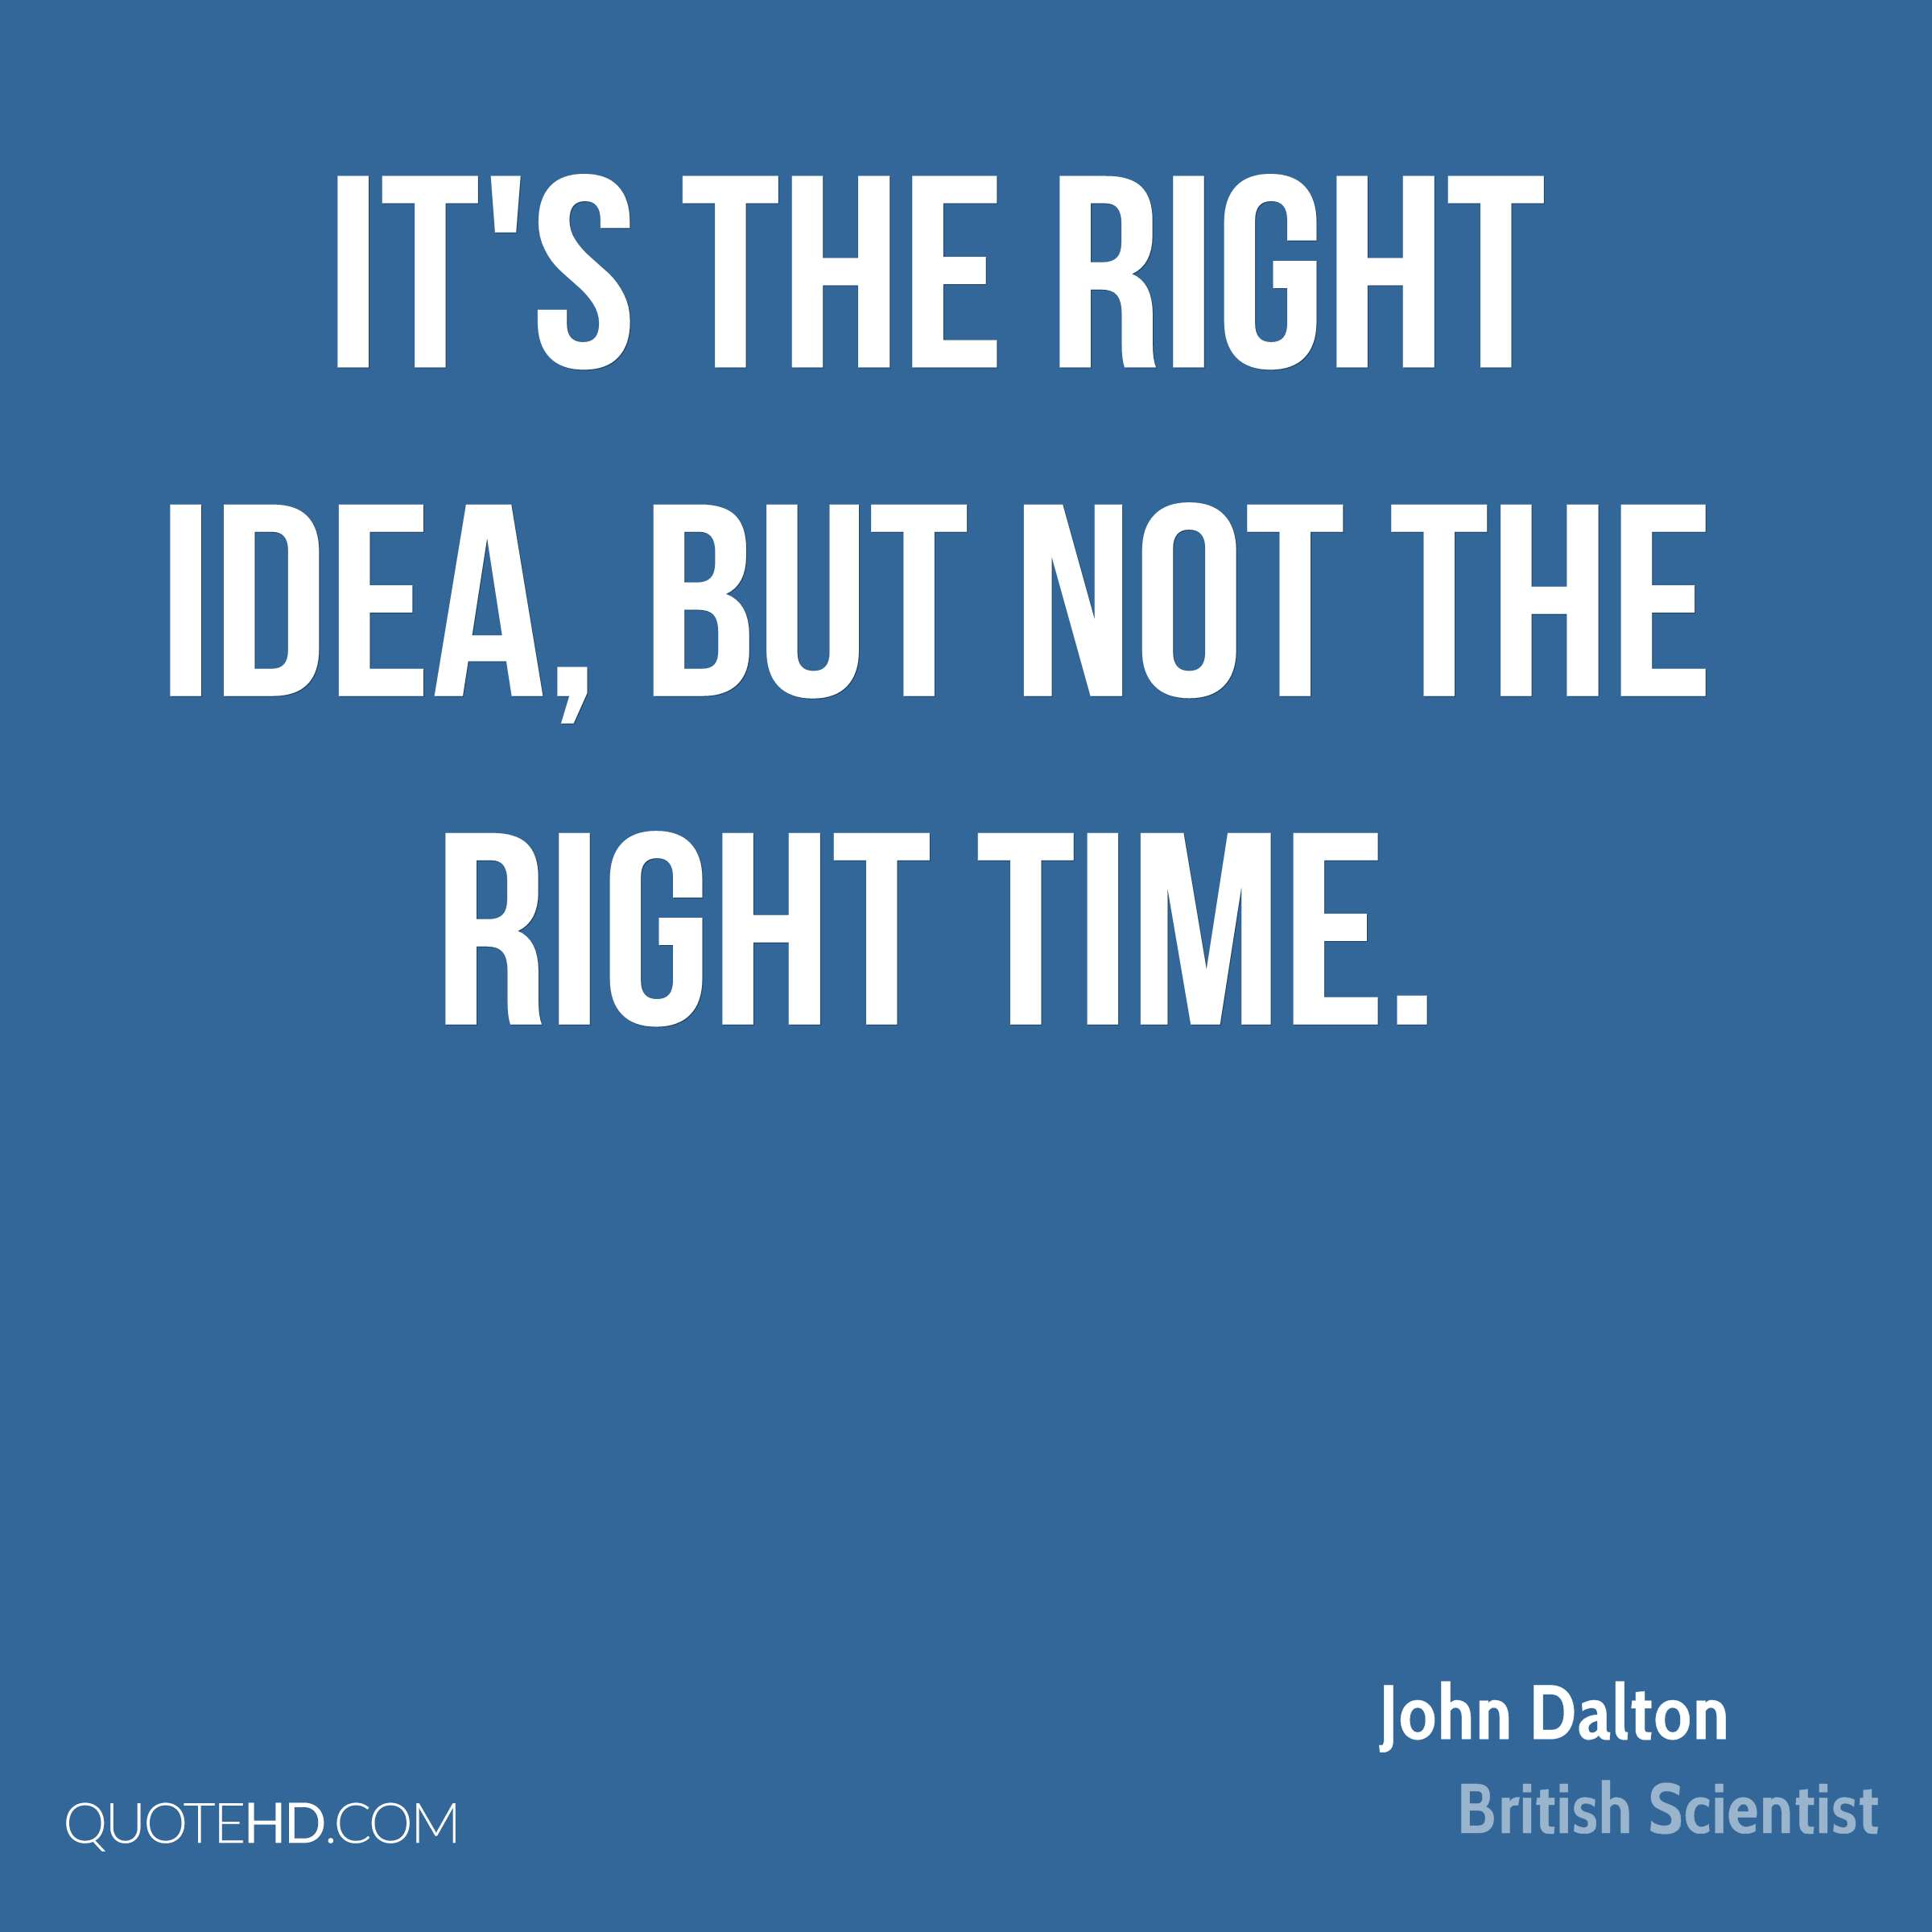 It's the right idea, but not the right time.